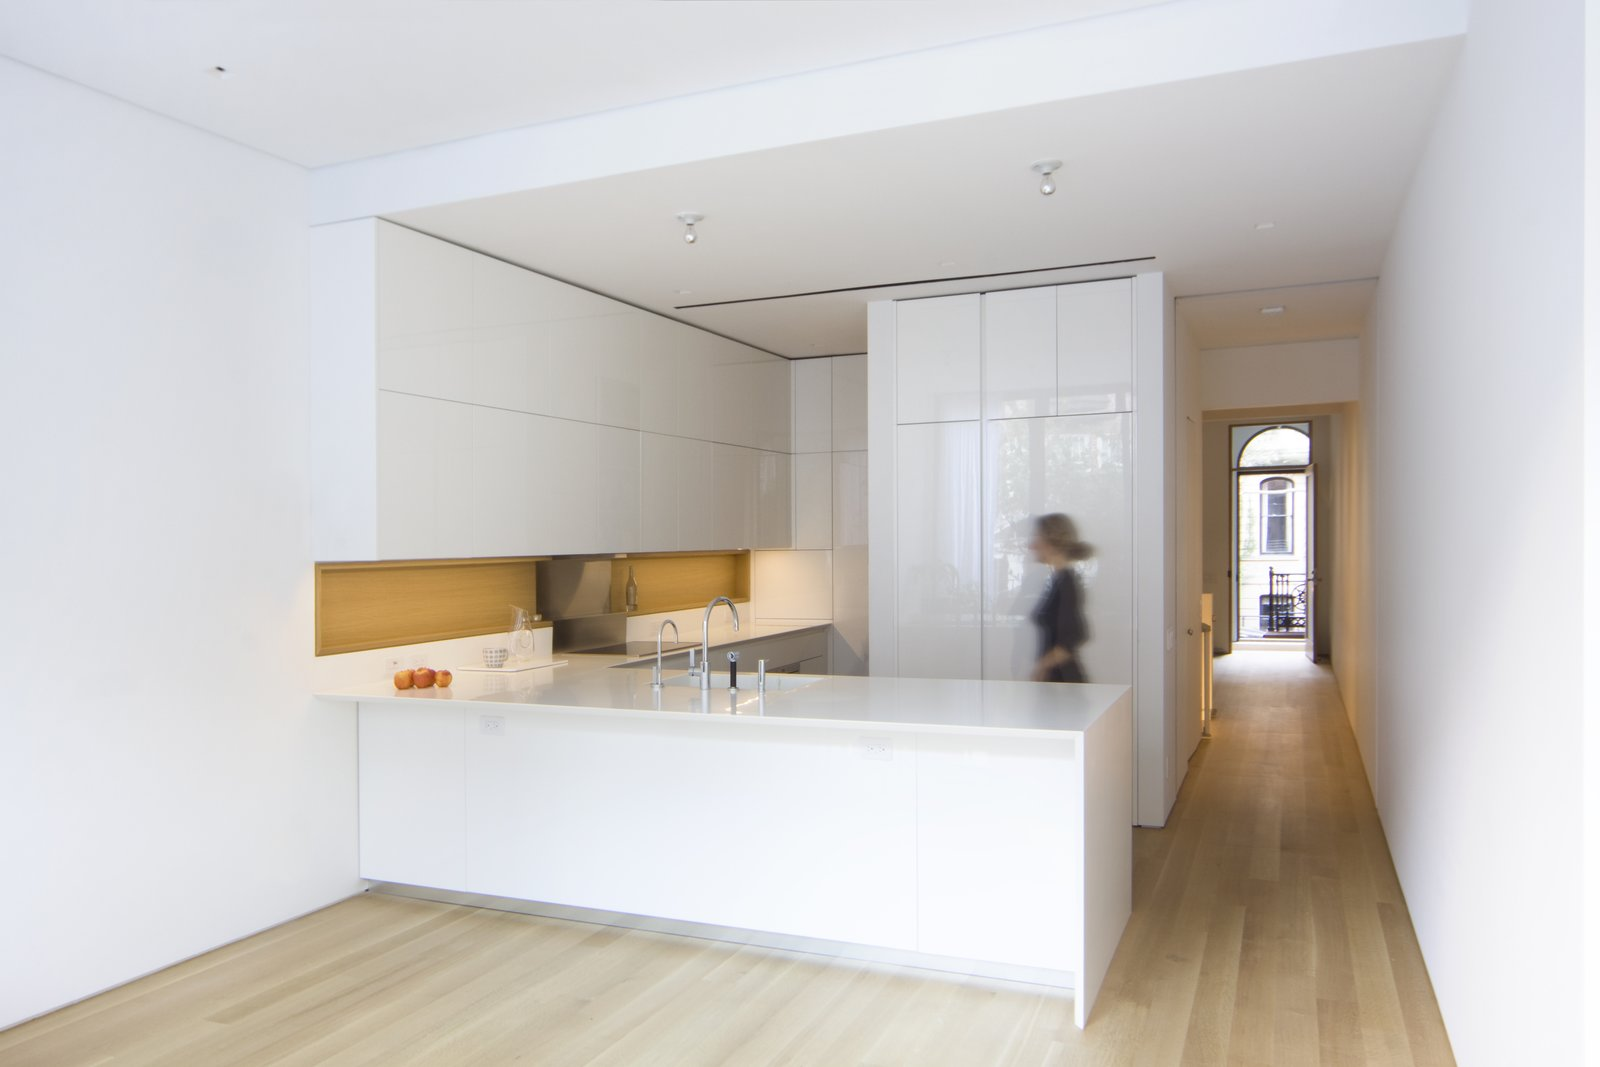 The kitchen has views to the historic main entrance and features lacquered cabinets and an integrated wooden niche custom-designed by the architects with GD Cucine. Matching Corian countertops and an integrated sink maintain a minimal aesthetic alongside appliances by Gaggenau and Miele. Tagged: Kitchen, Engineered Quartz Counter, White Cabinet, Light Hardwood Floor, Ceiling Lighting, and Undermount Sink. White Oak by Maura Lucking